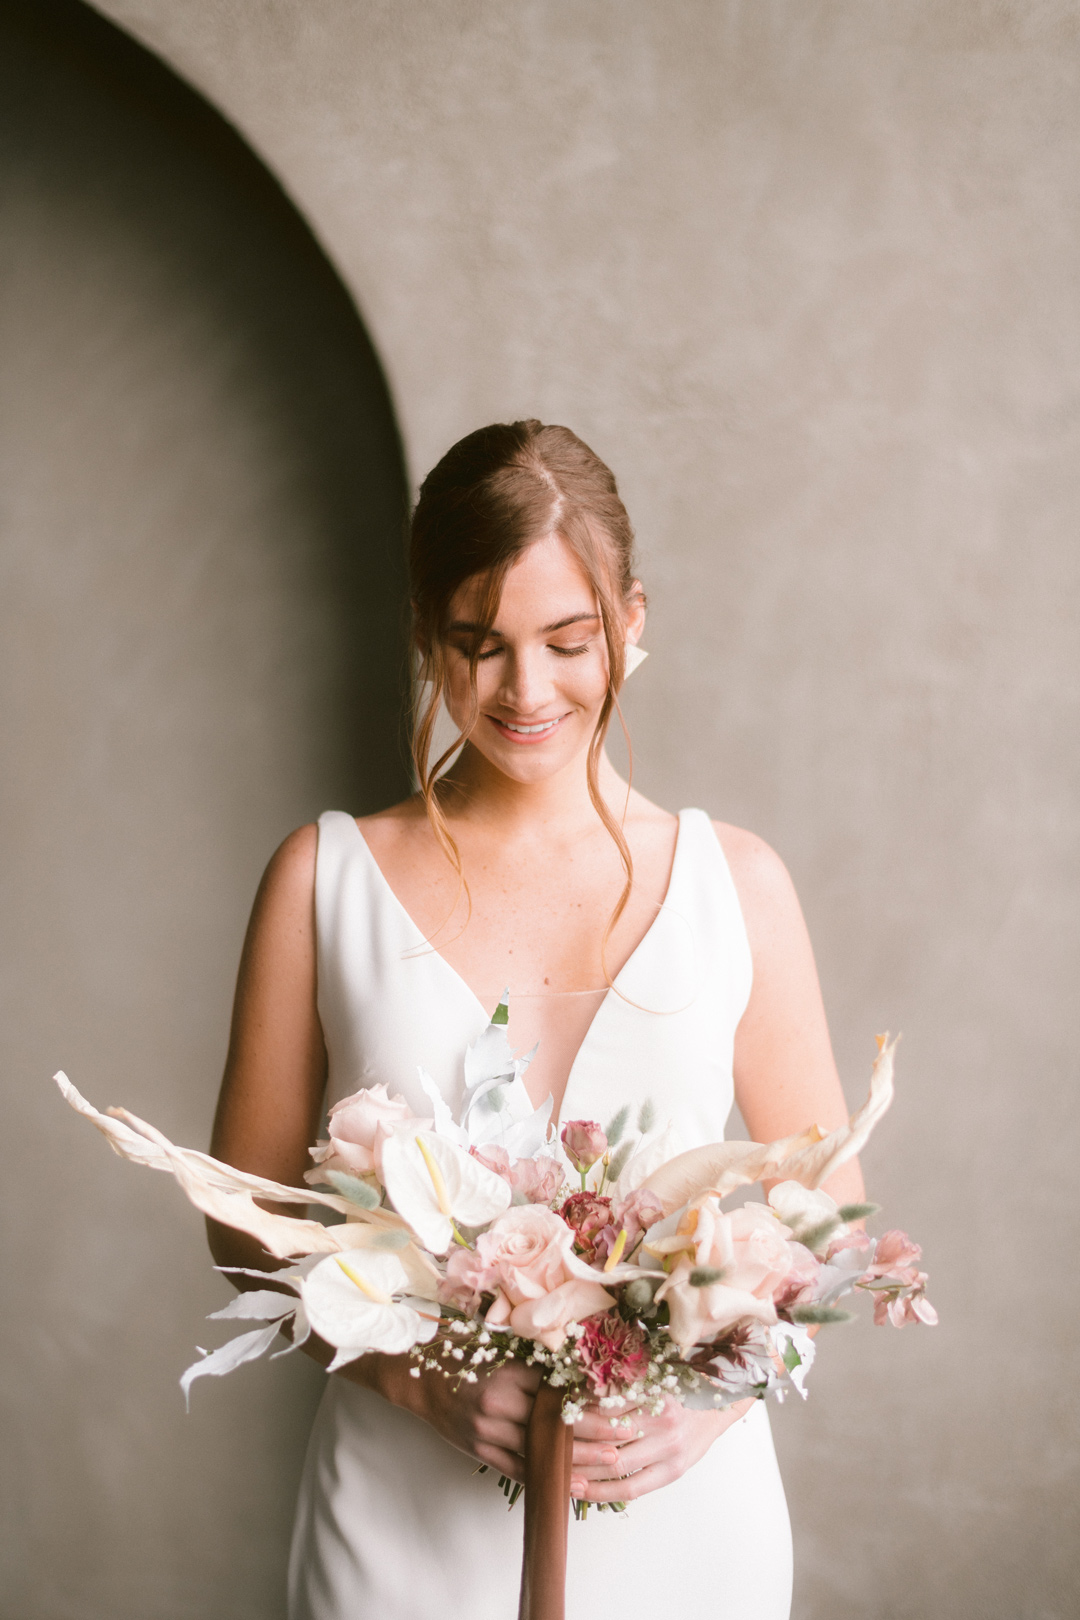 Bride smiling and looking down with Bouquet